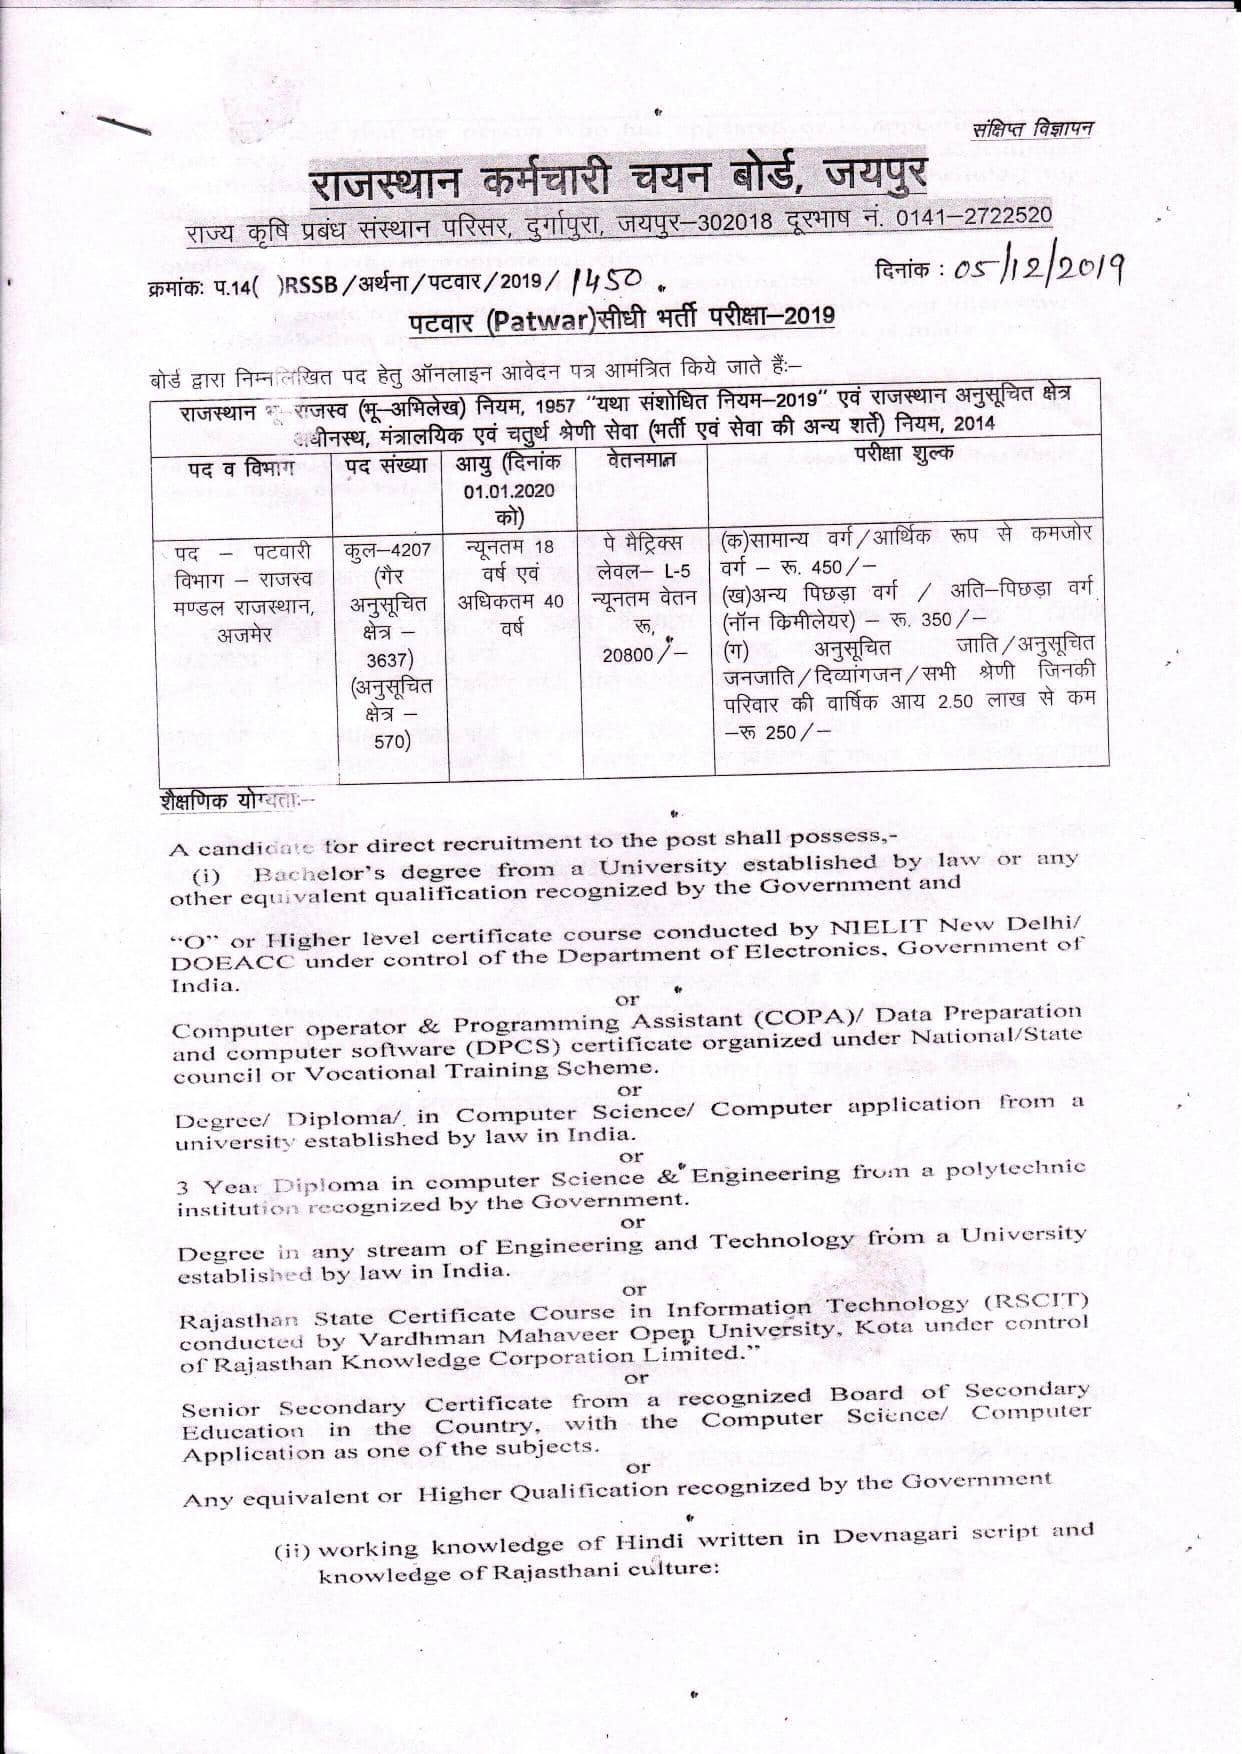 Rajasthan Patwari Application Form will be available from 20 Jan 2020, Last date to apply will be 19 Feb 2020: Here is the notification